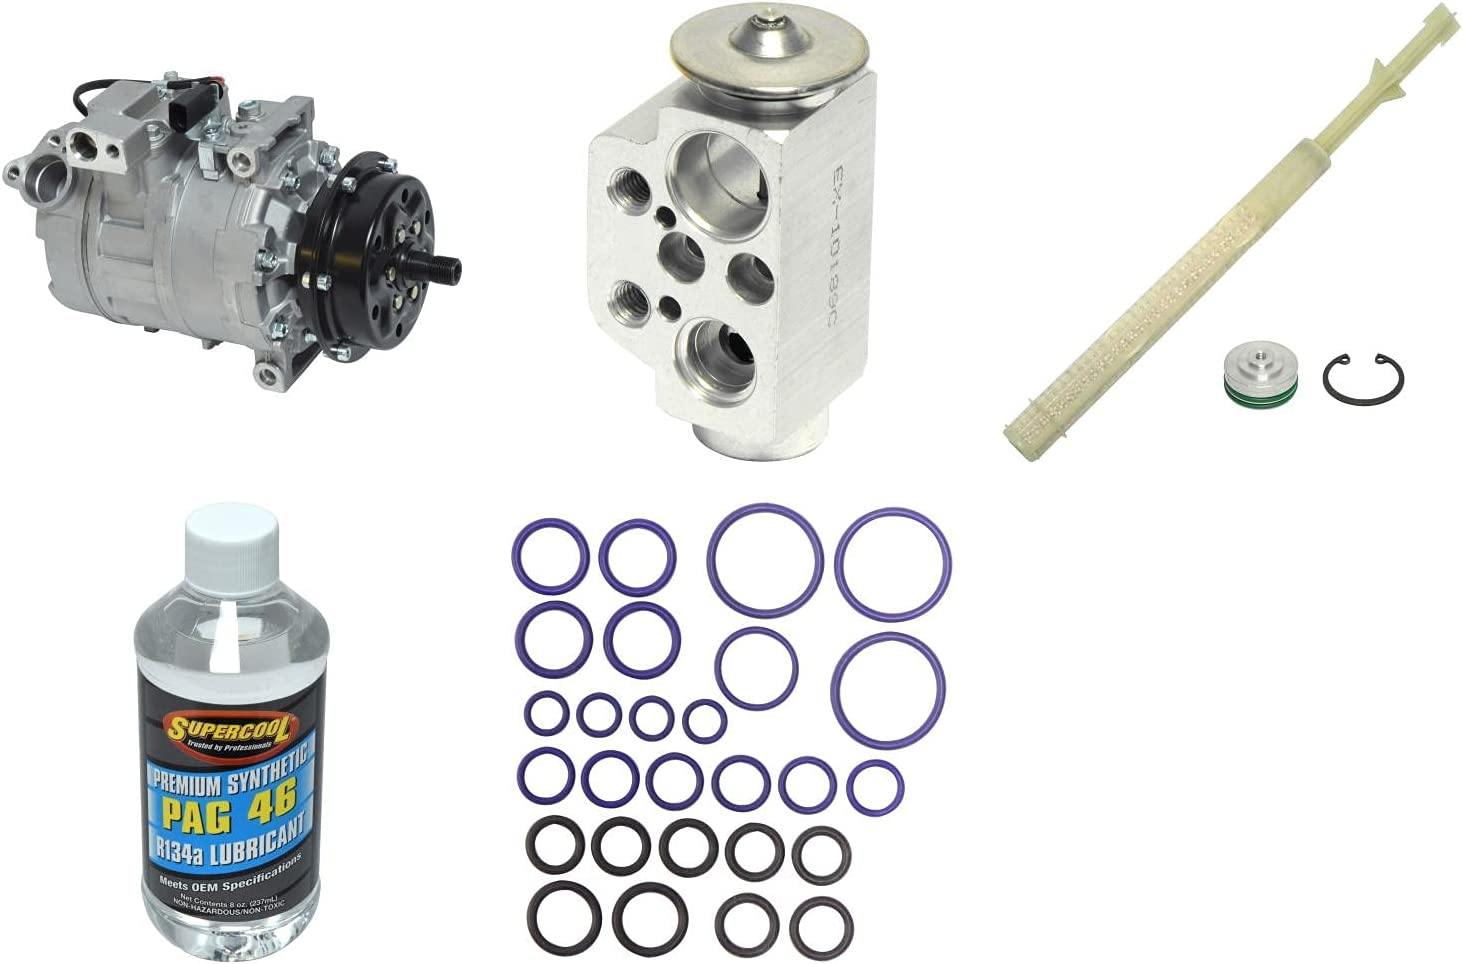 New A C Compressor and Max 77% OFF Max 48% OFF Kit for Component Touareg